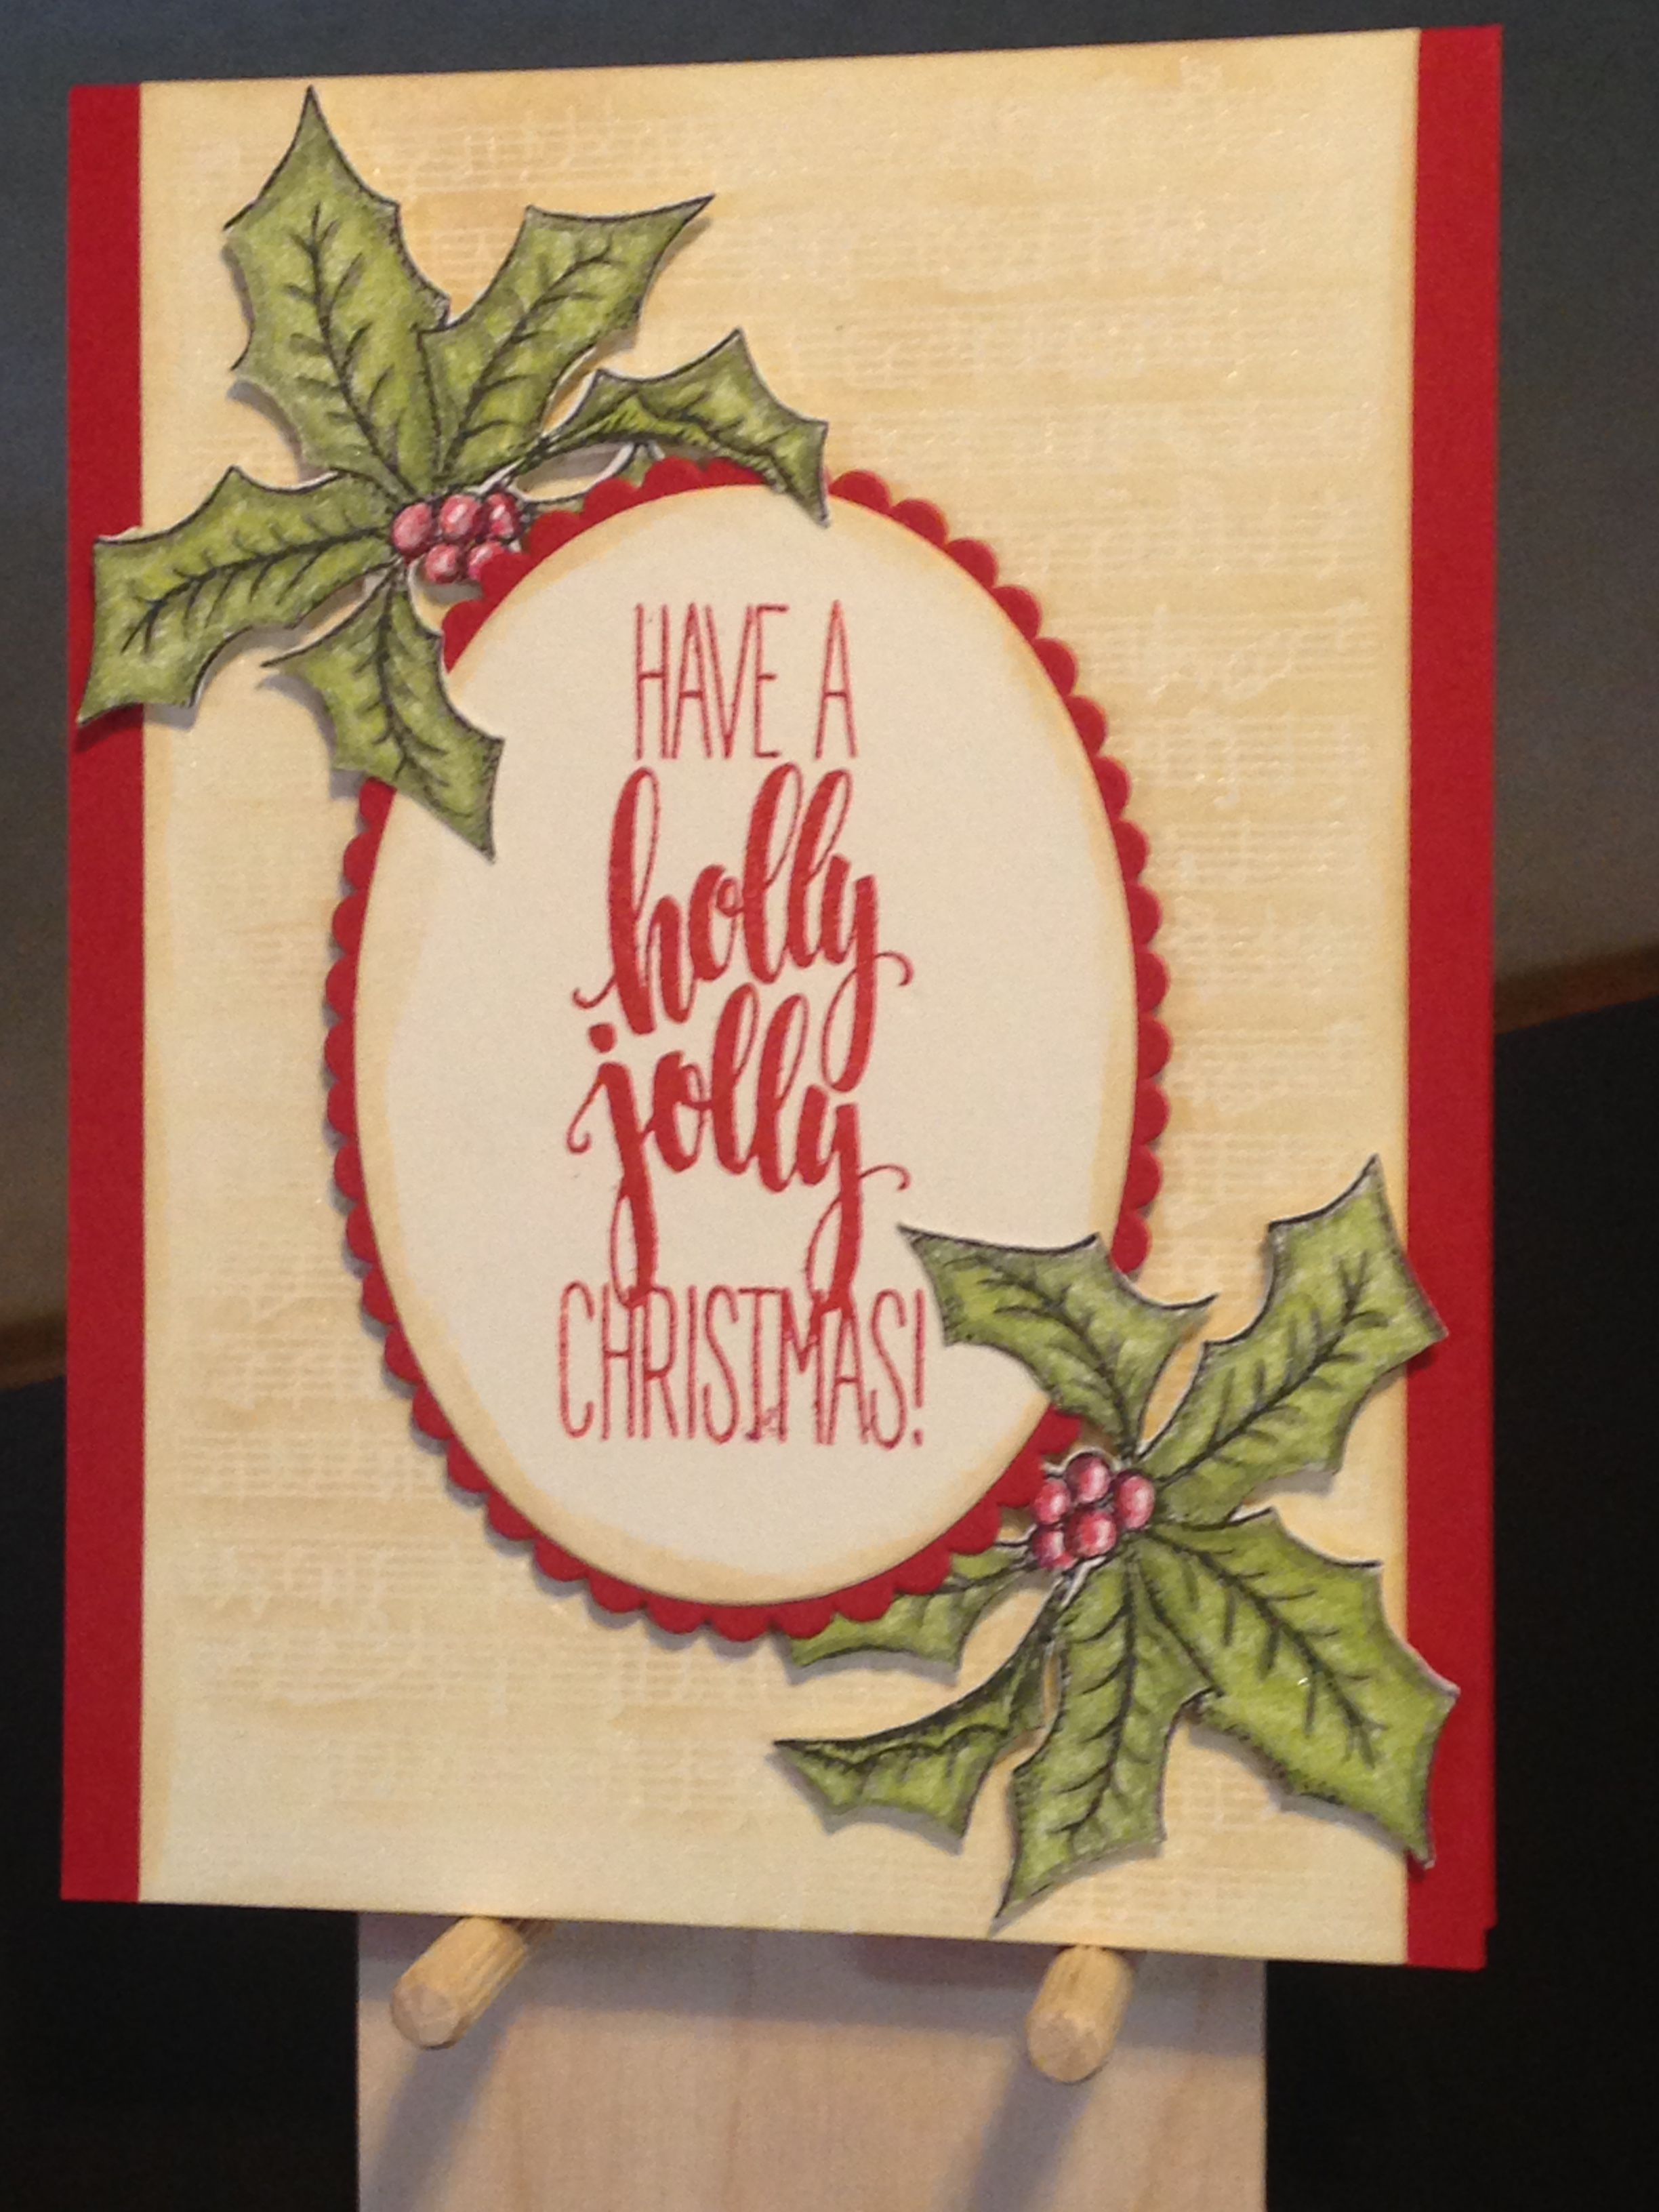 Christmas card gina k stamps dashing holly jolly music christmas card gina k stamps dashing holly jolly music background stampin up layering ovals thinlits paper strathmore colored pencil paper kristyandbryce Choice Image